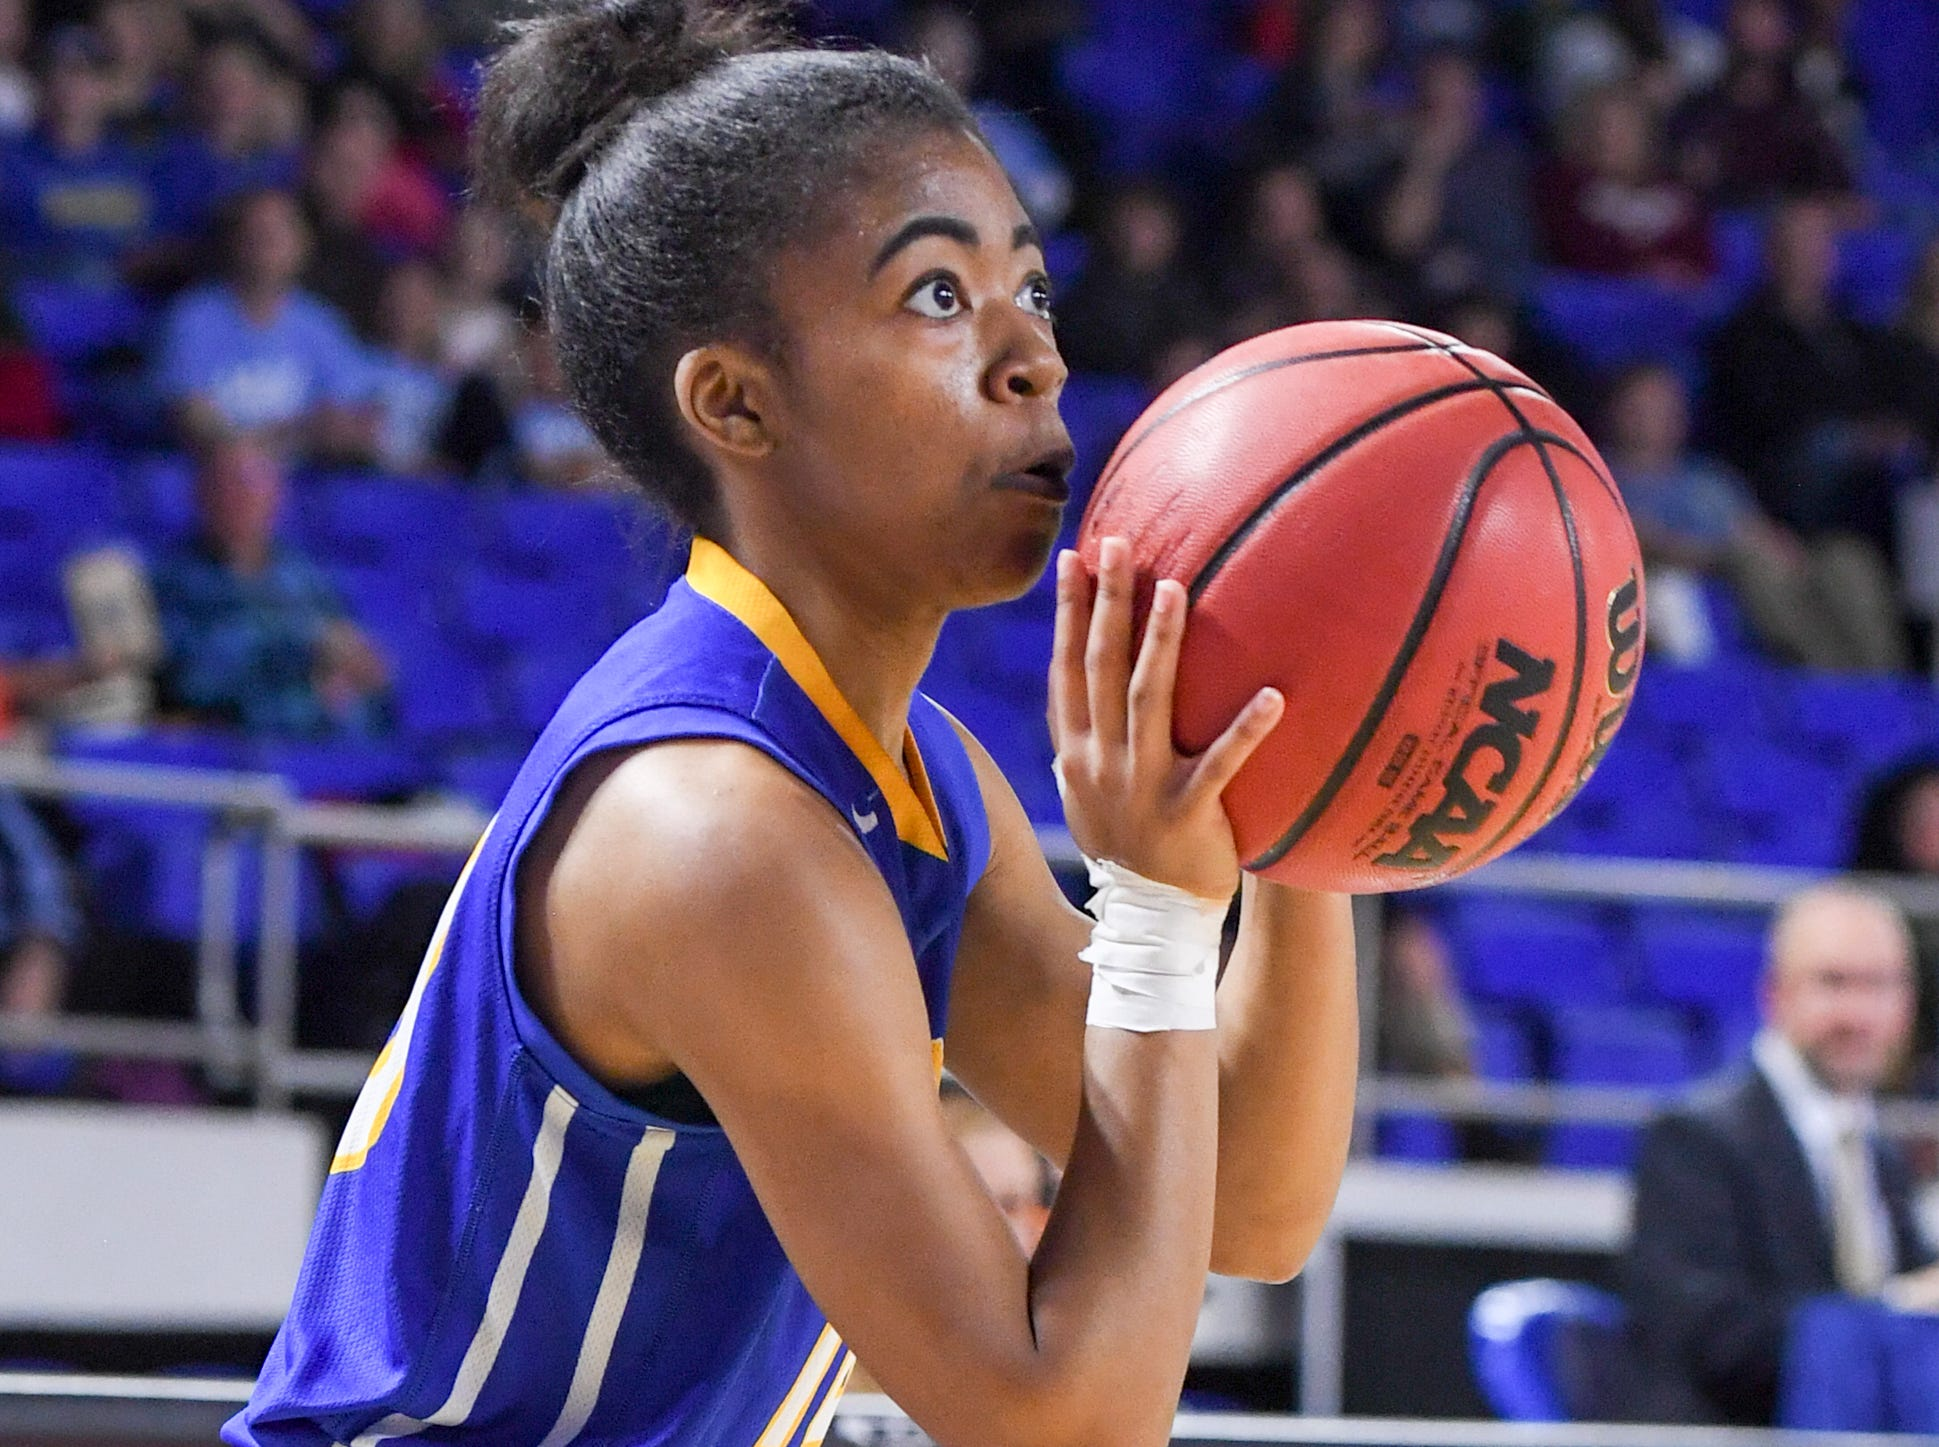 Westview's Zanasha Gadlen (10) spots up for a three during their Class AA championship game against Cheatham County, Saturday, March 9, 2019, in Murfreesboro.